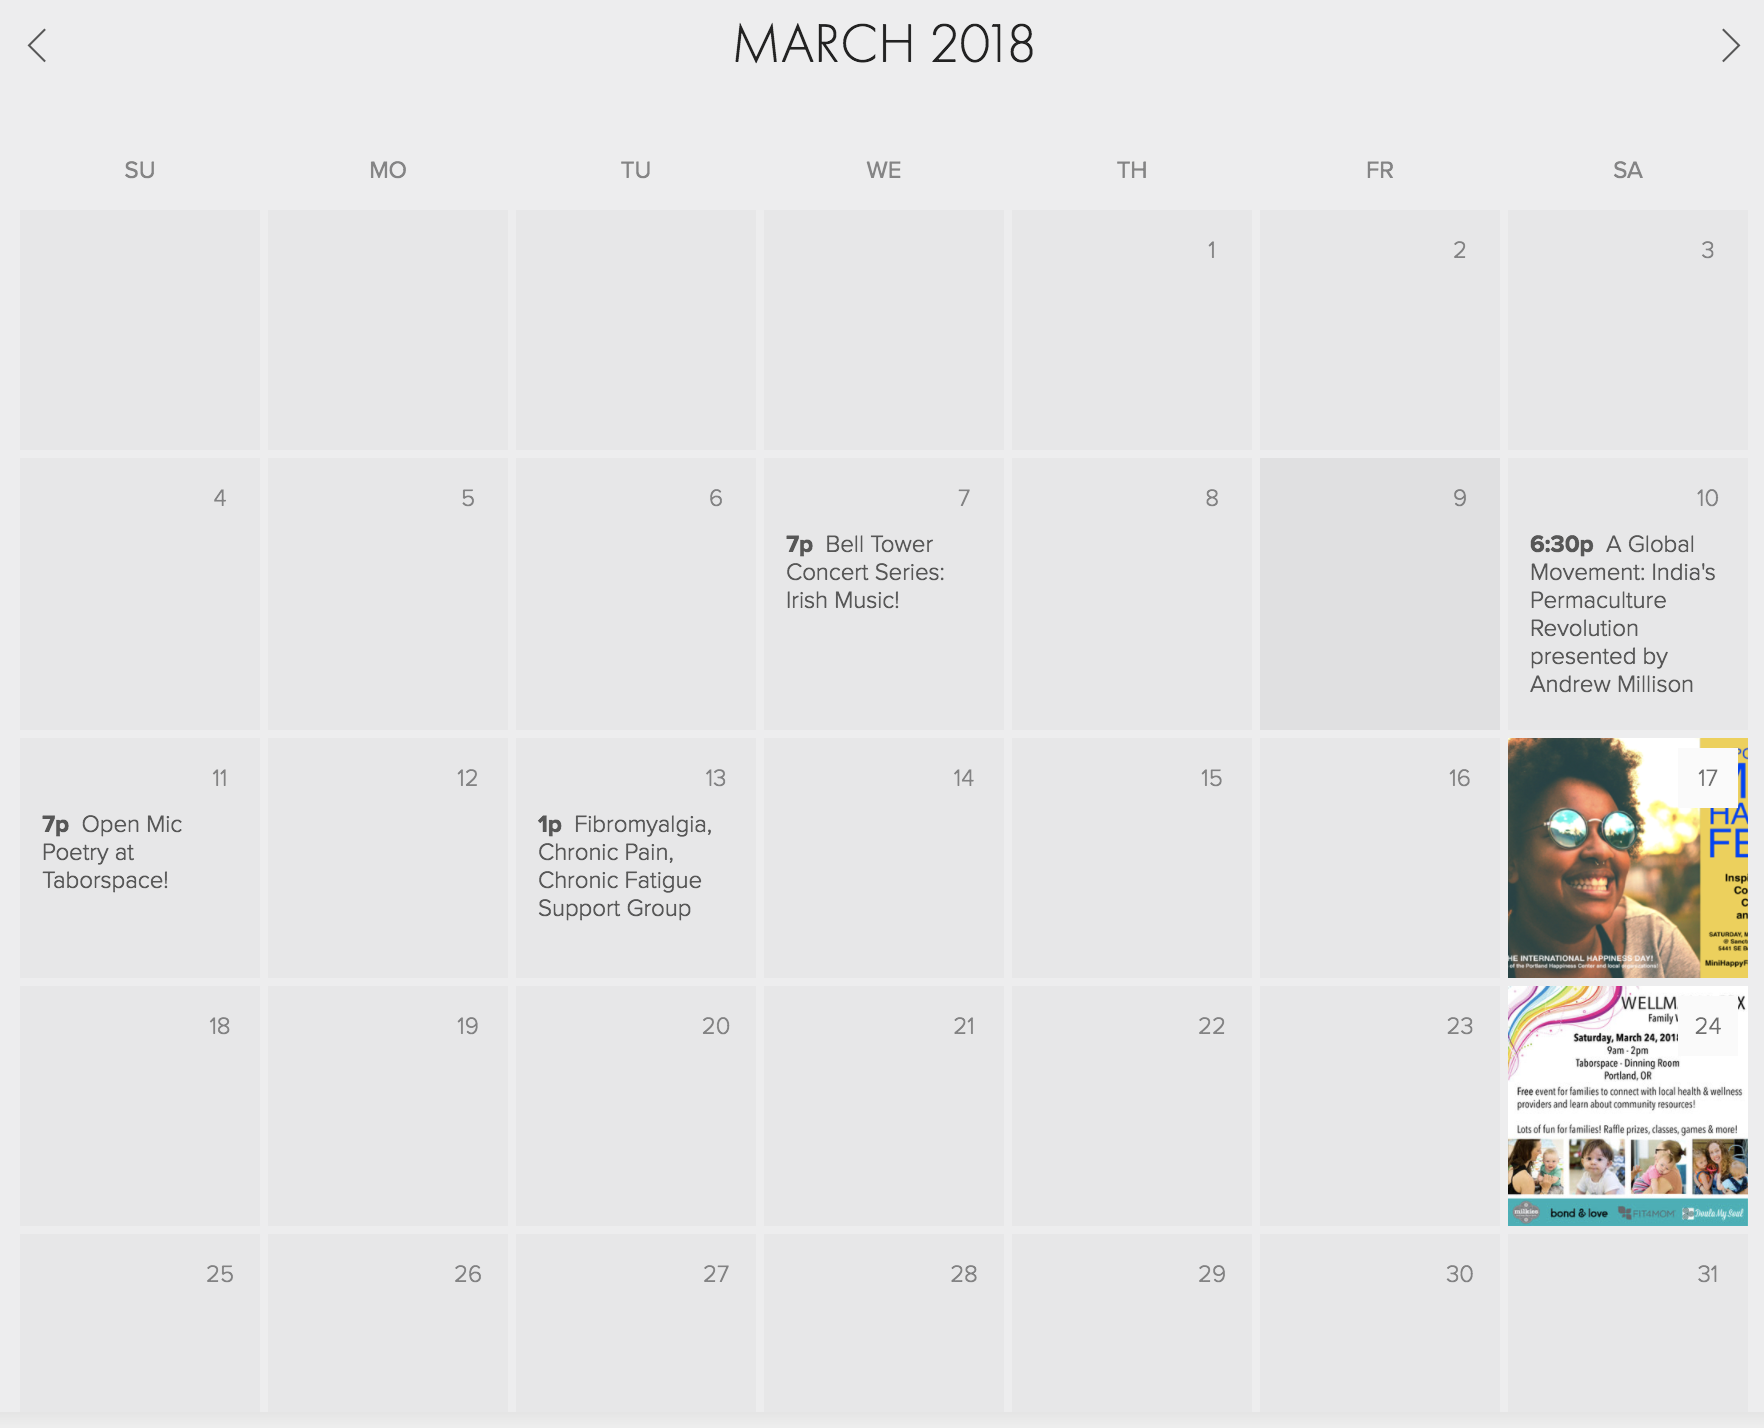 CALENDAR PREVIEW - Here's a glimpse at the Public Events Calendar!